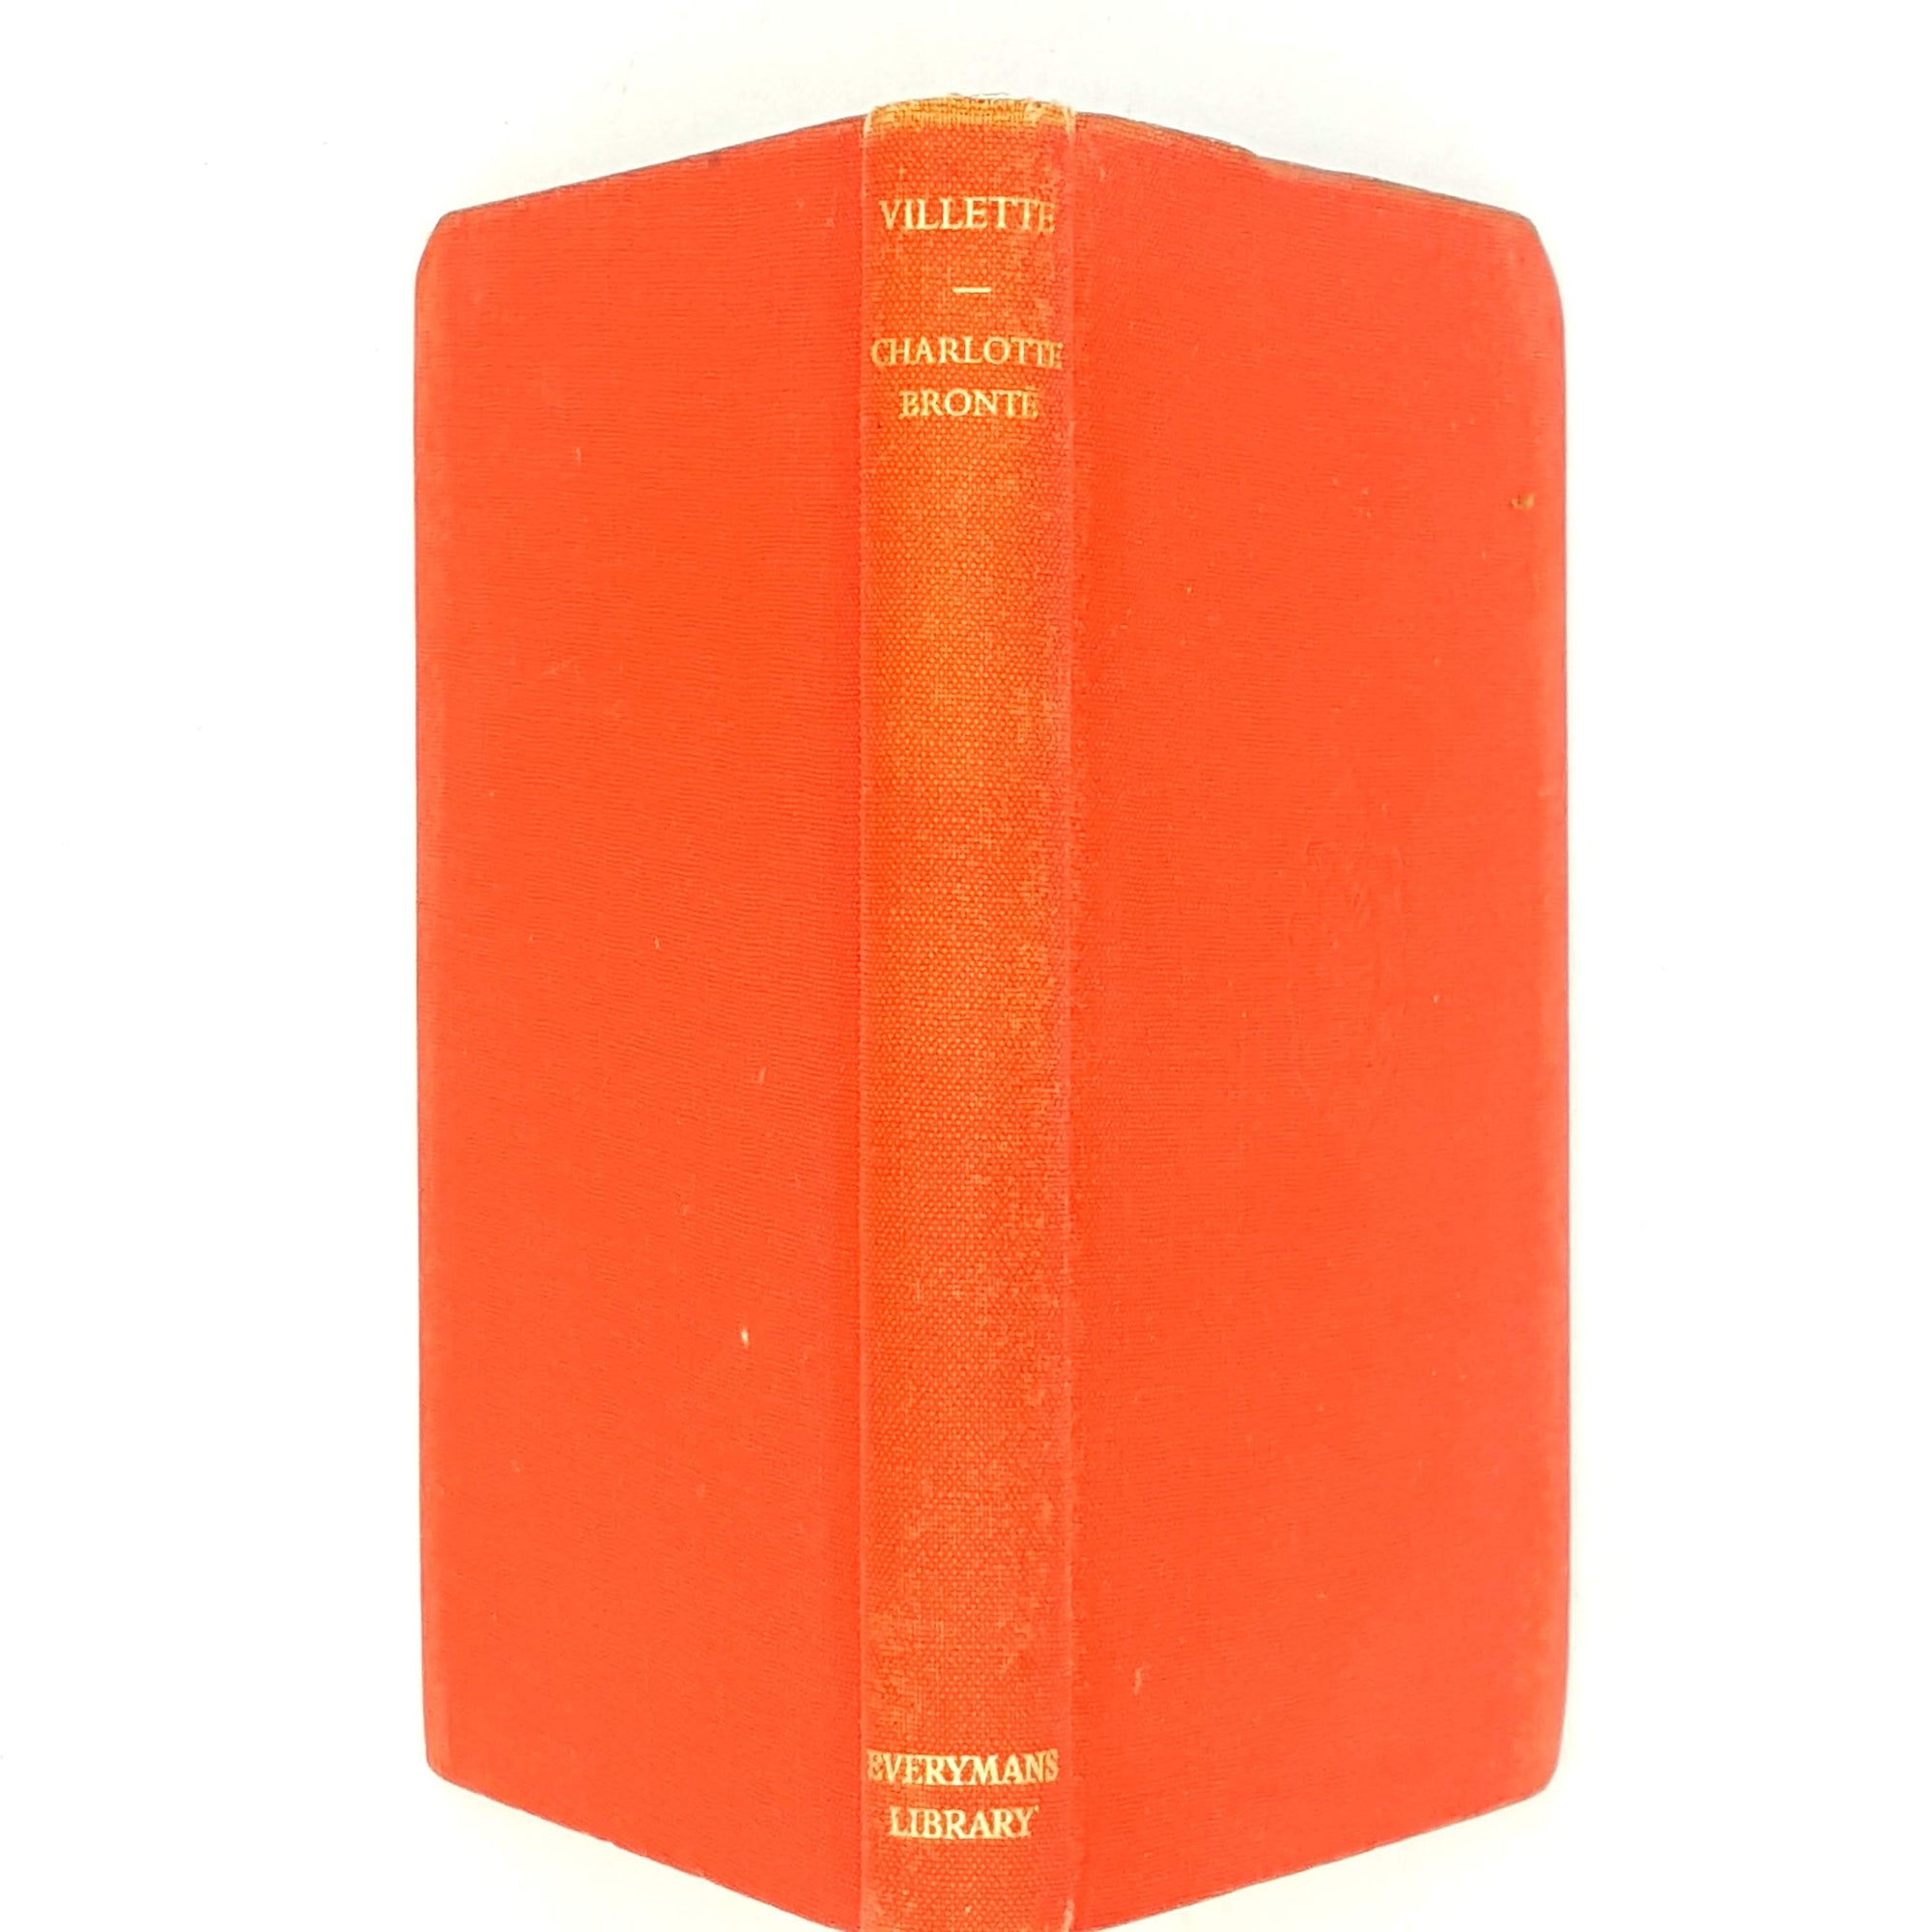 orange-villette-country-house-library-vintage-books-decorative-classics-old-1952-charlotte-bronte-book-everymans-library-